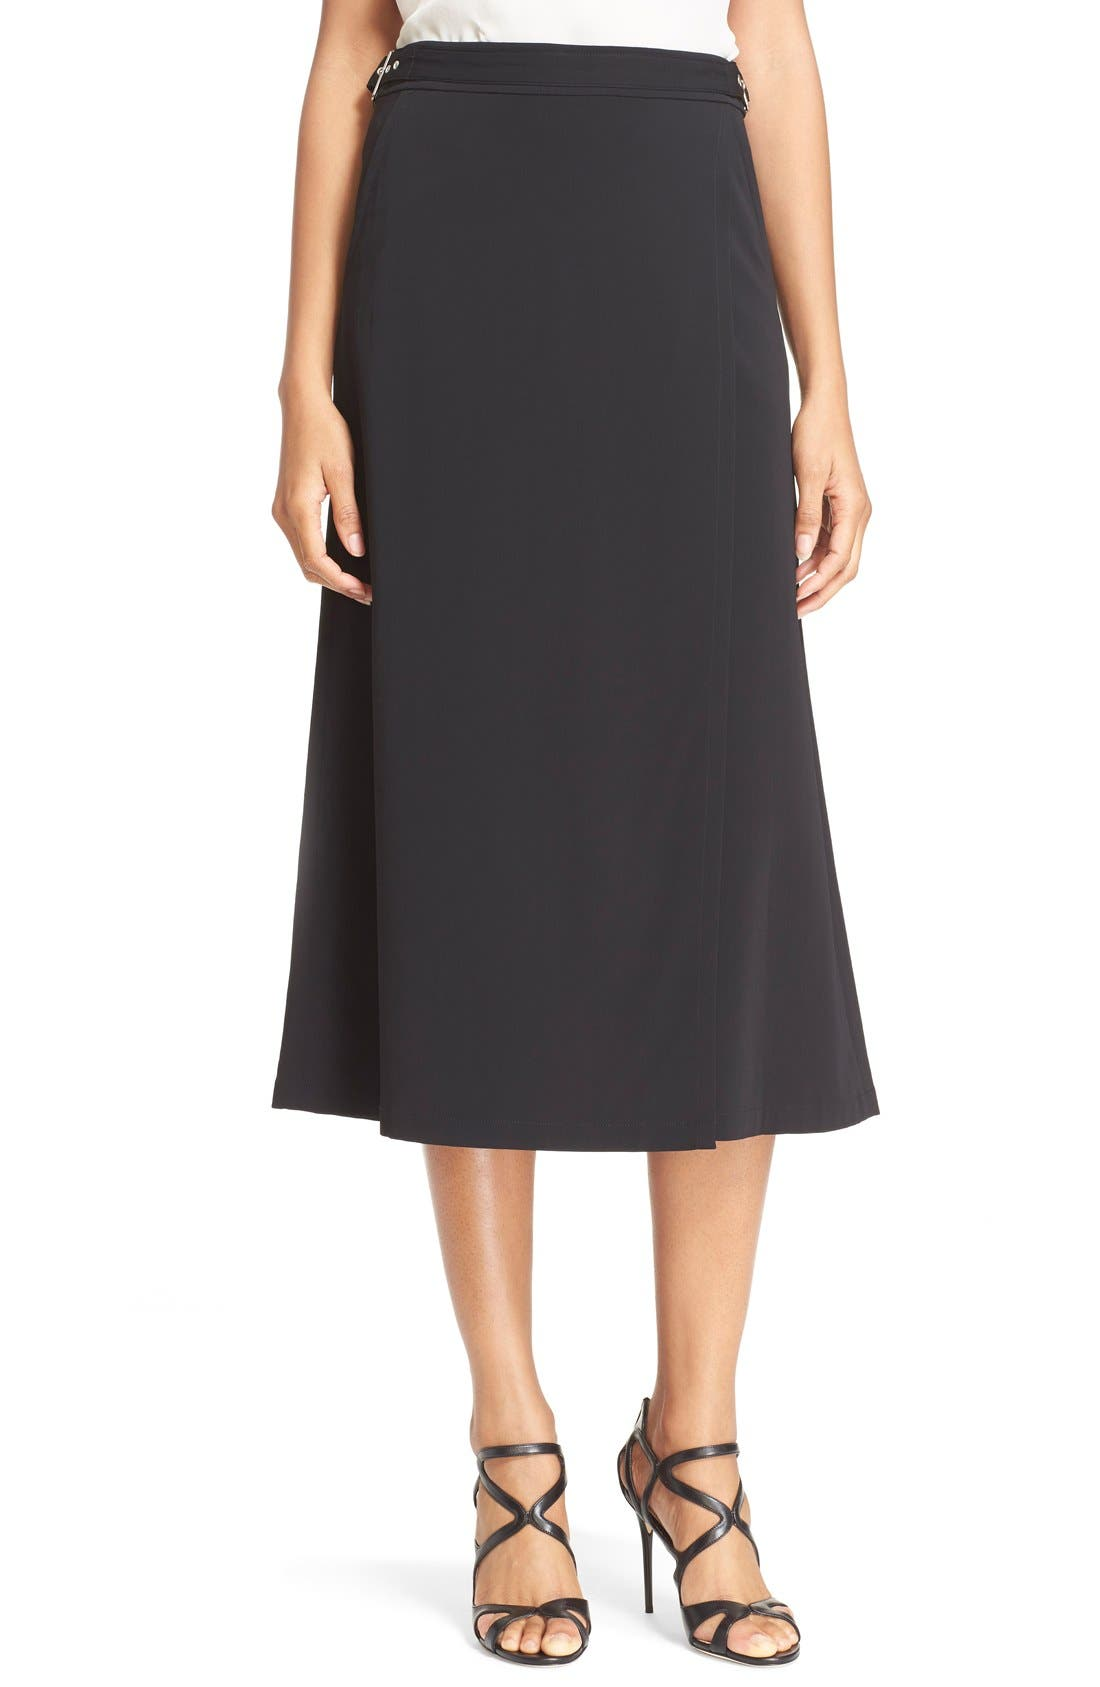 Alternate Image 1 Selected - Tracy Reese Wrap A-Line Skirt